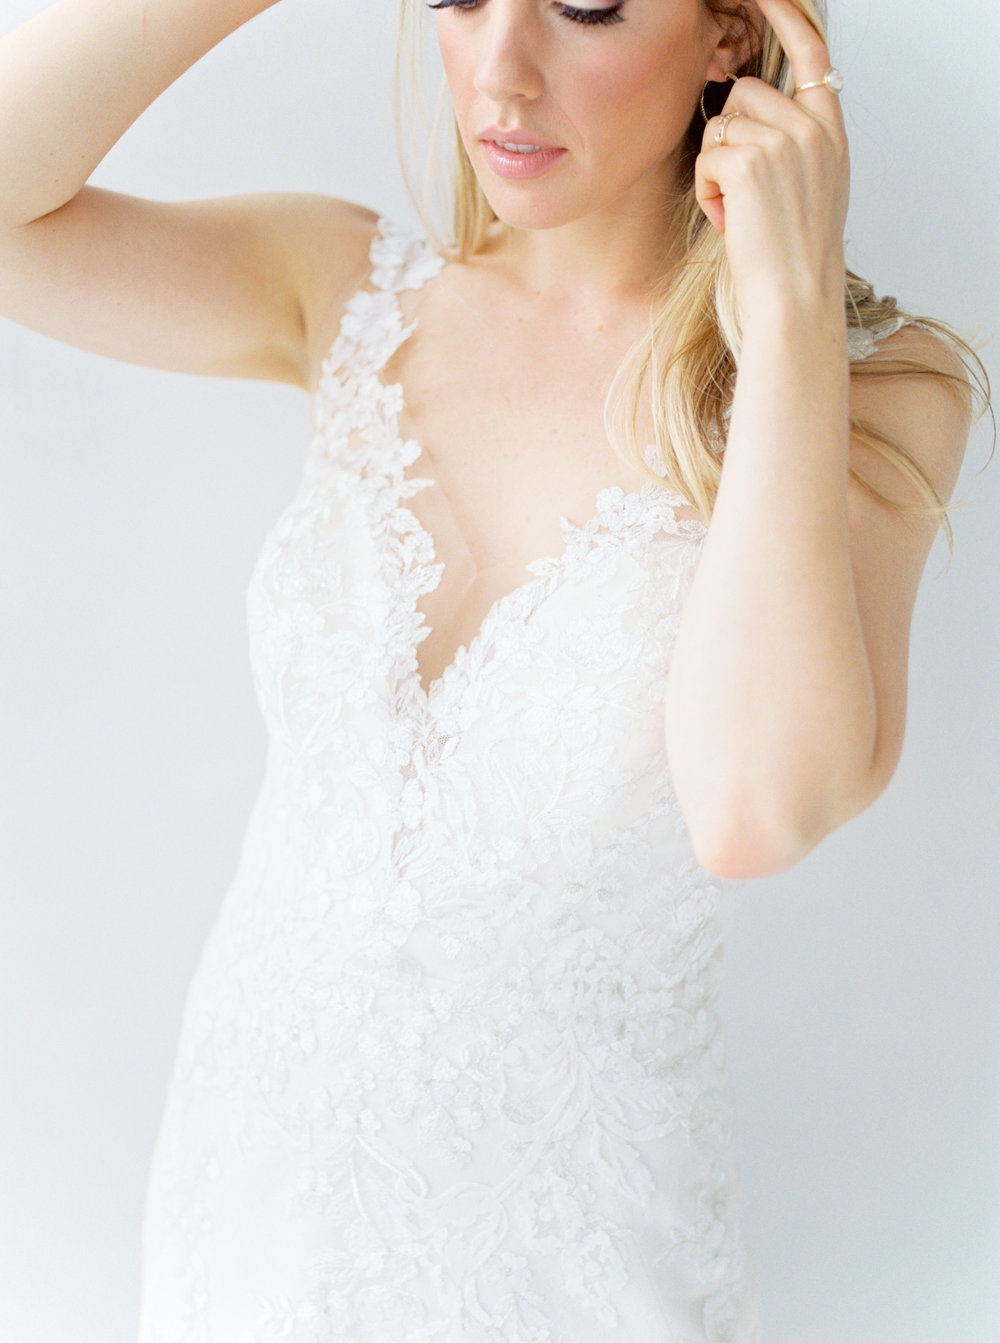 haley-richter-photography-liberty-and-lace-philadelphia-wedding-dress-boutique-106.jpg